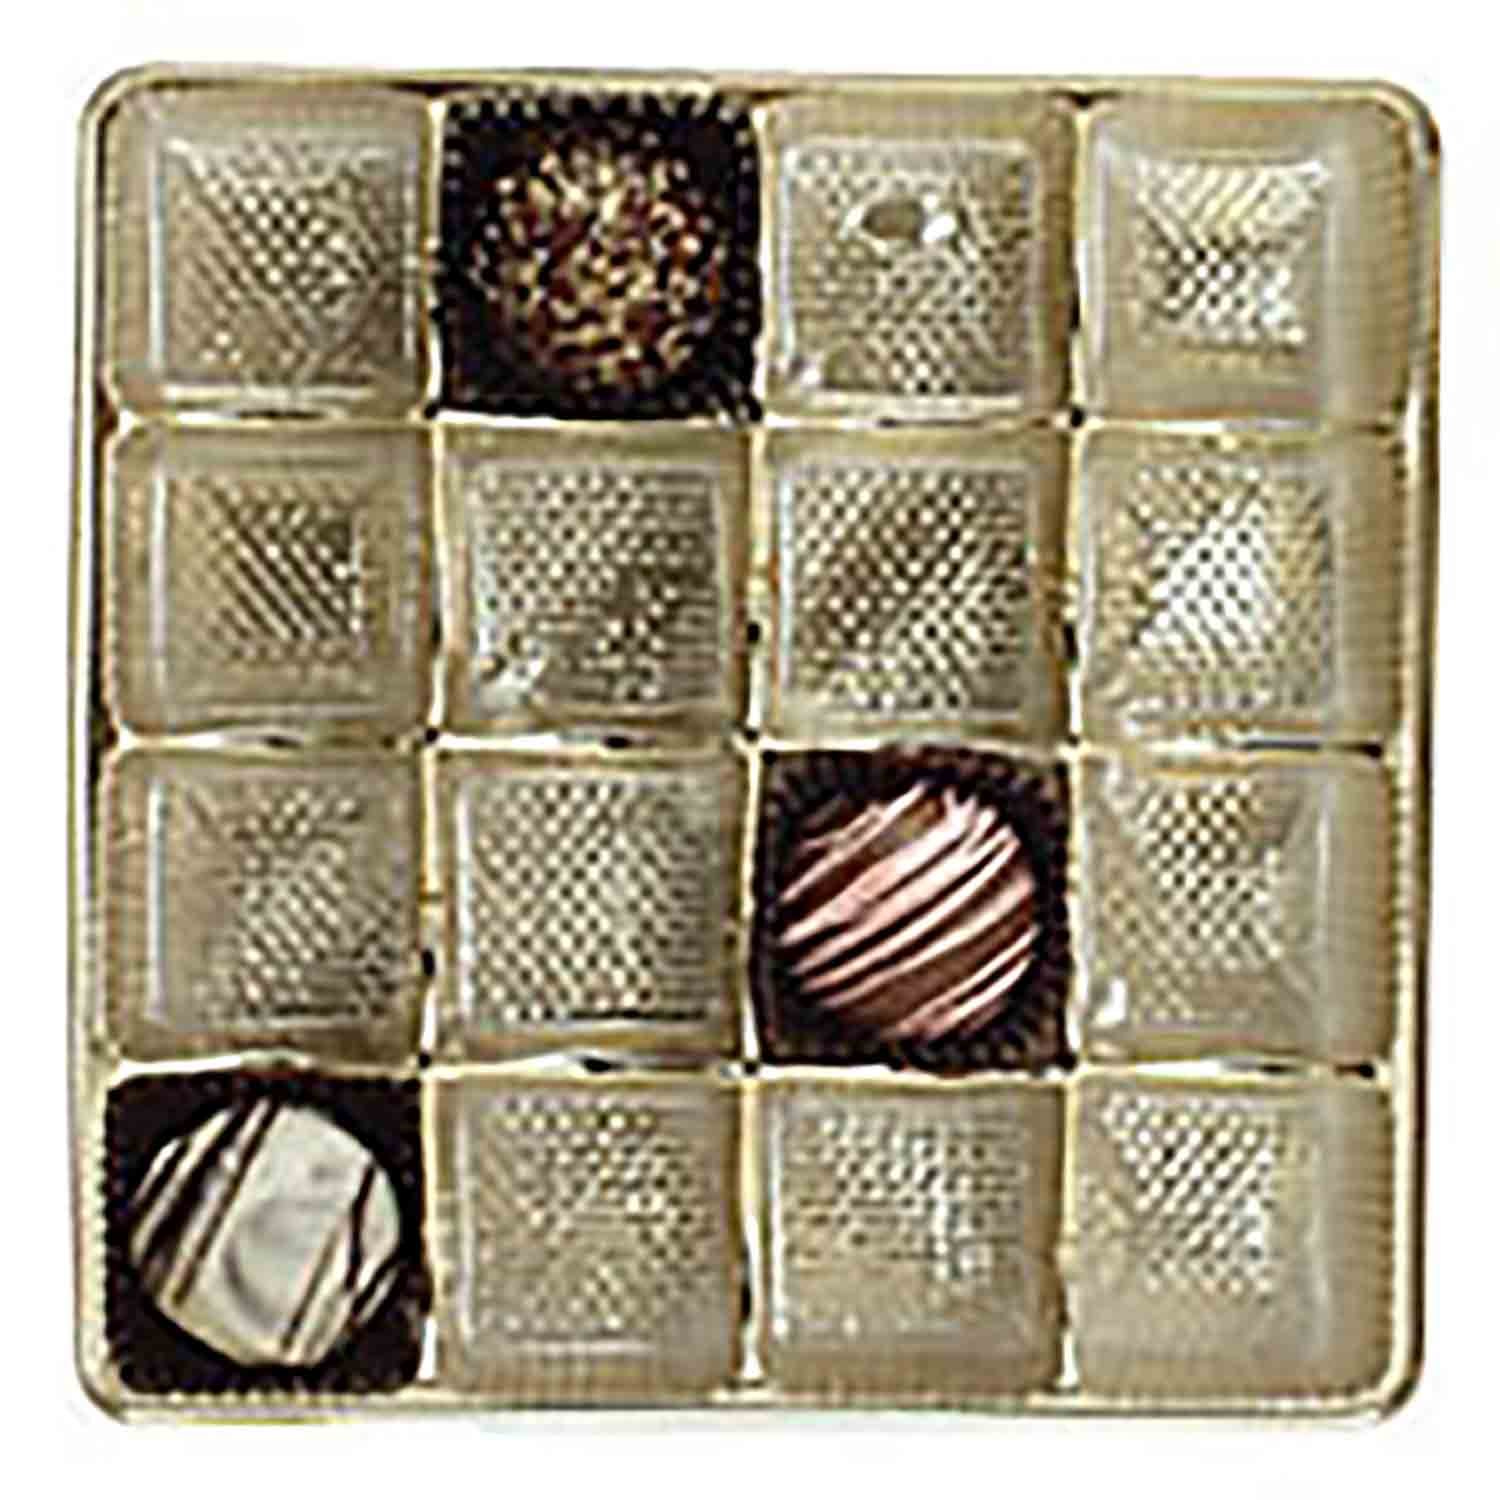 1/2 lb. Box Square Gold Insert,#4 cup, 16 cavities